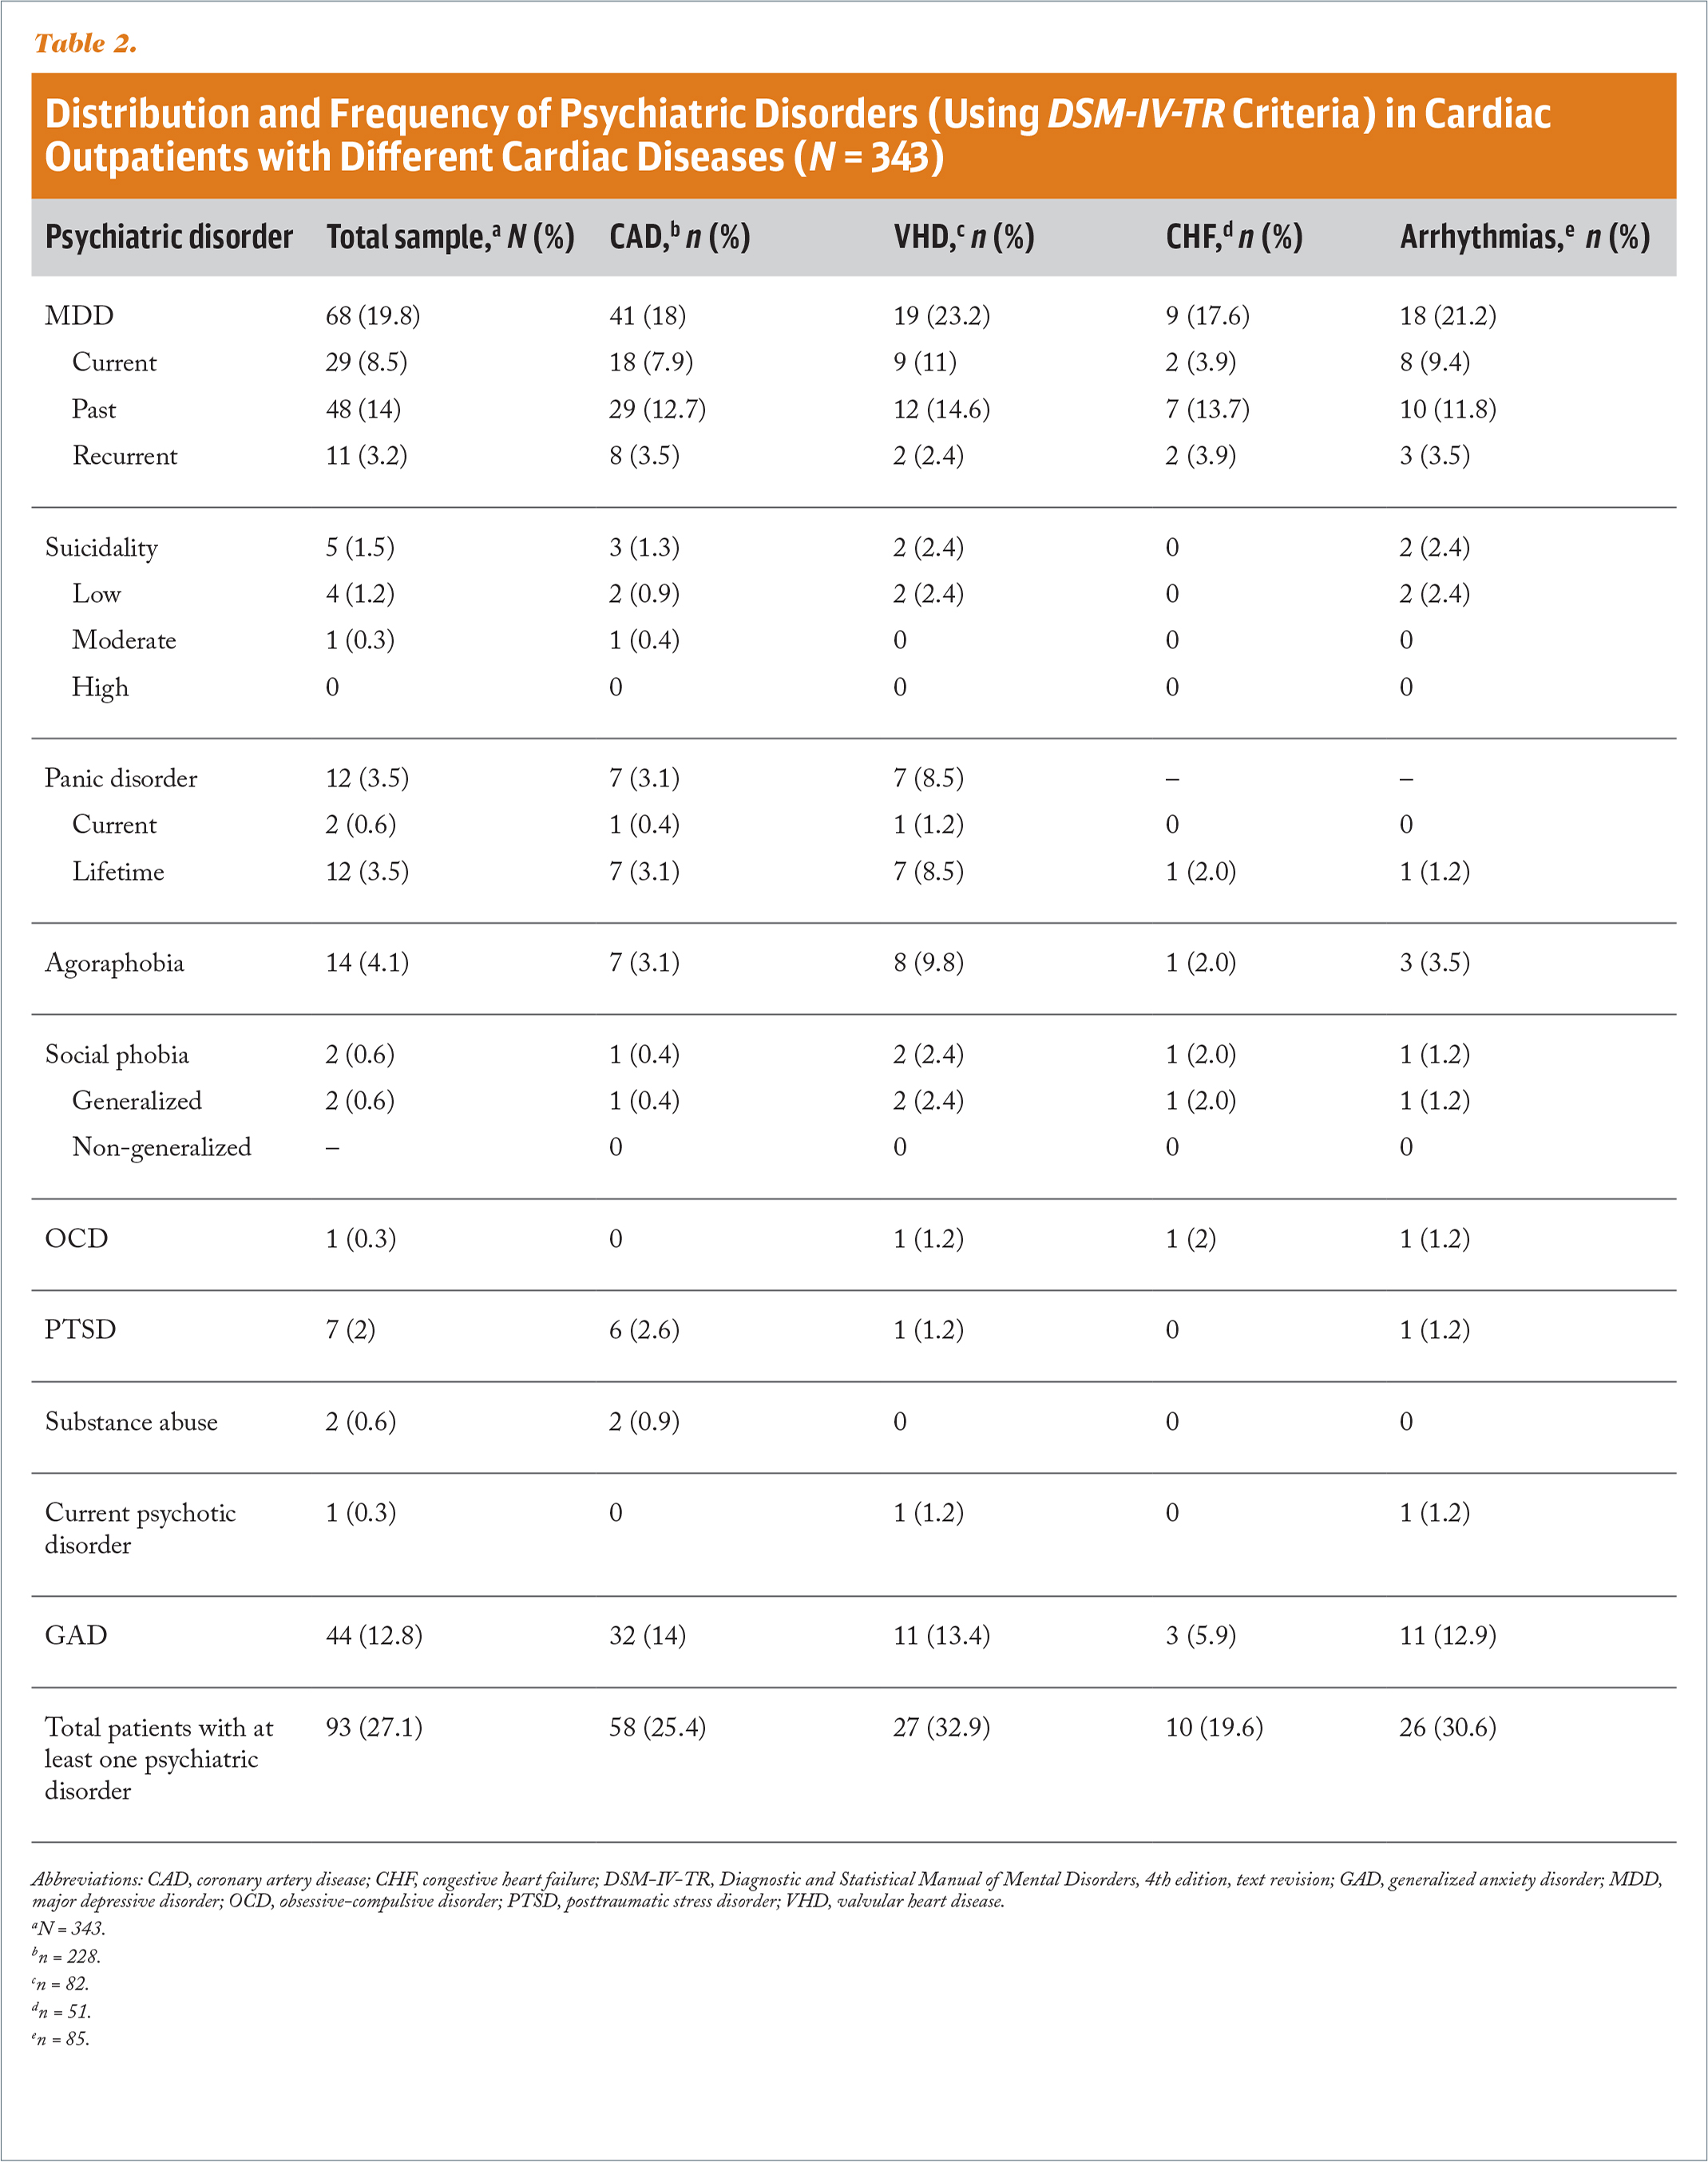 Distribution and Frequency of Psychiatric Disorders (Using DSM-IV-TR Criteria) in Cardiac Outpatients with Different Cardiac Diseases (N = 343)